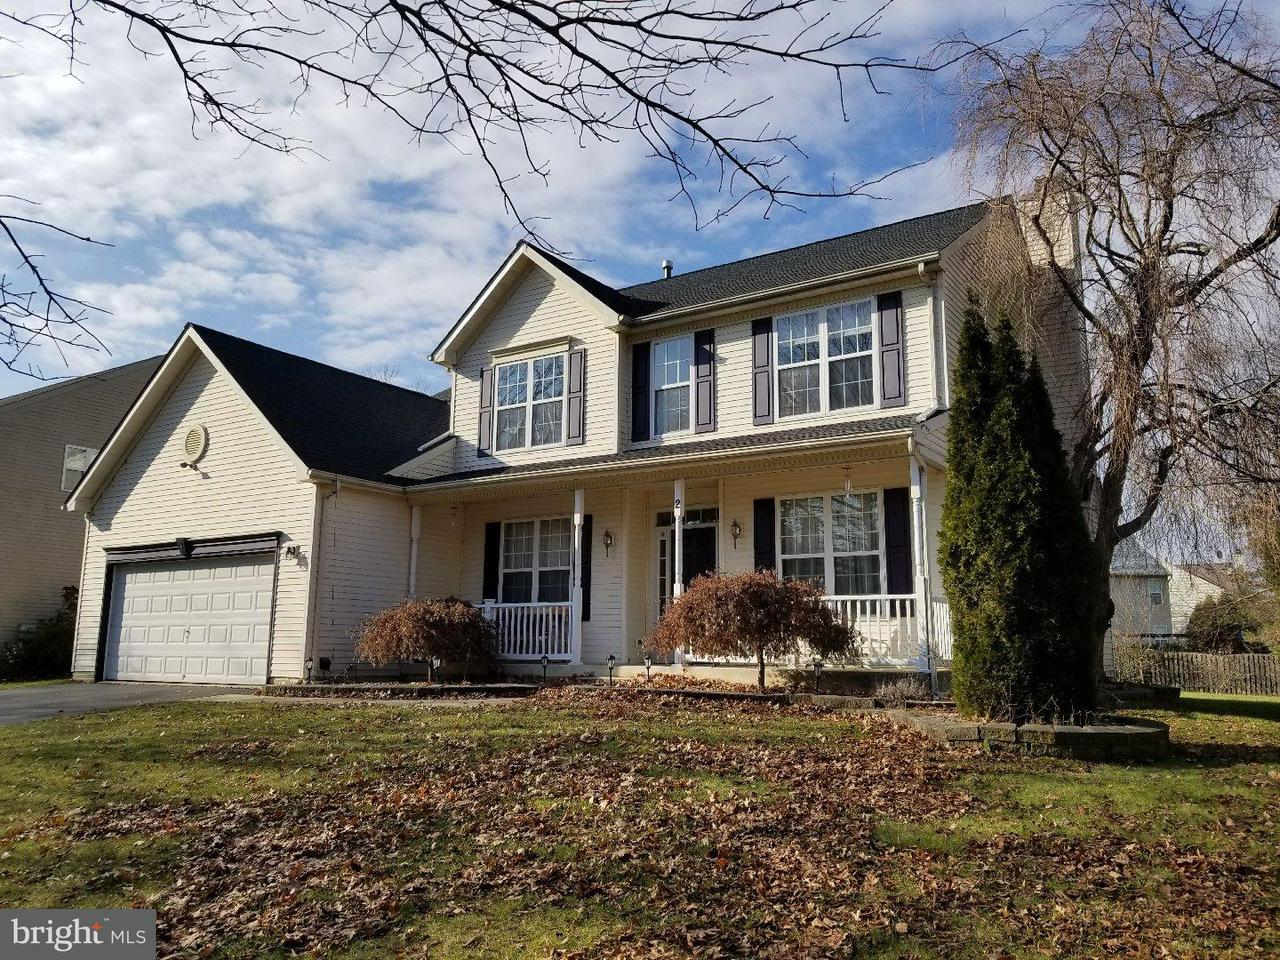 Single Family Home for Rent at 2 DURHAM WAY East Windsor, New Jersey 08520 United StatesMunicipality: East Windsor Township